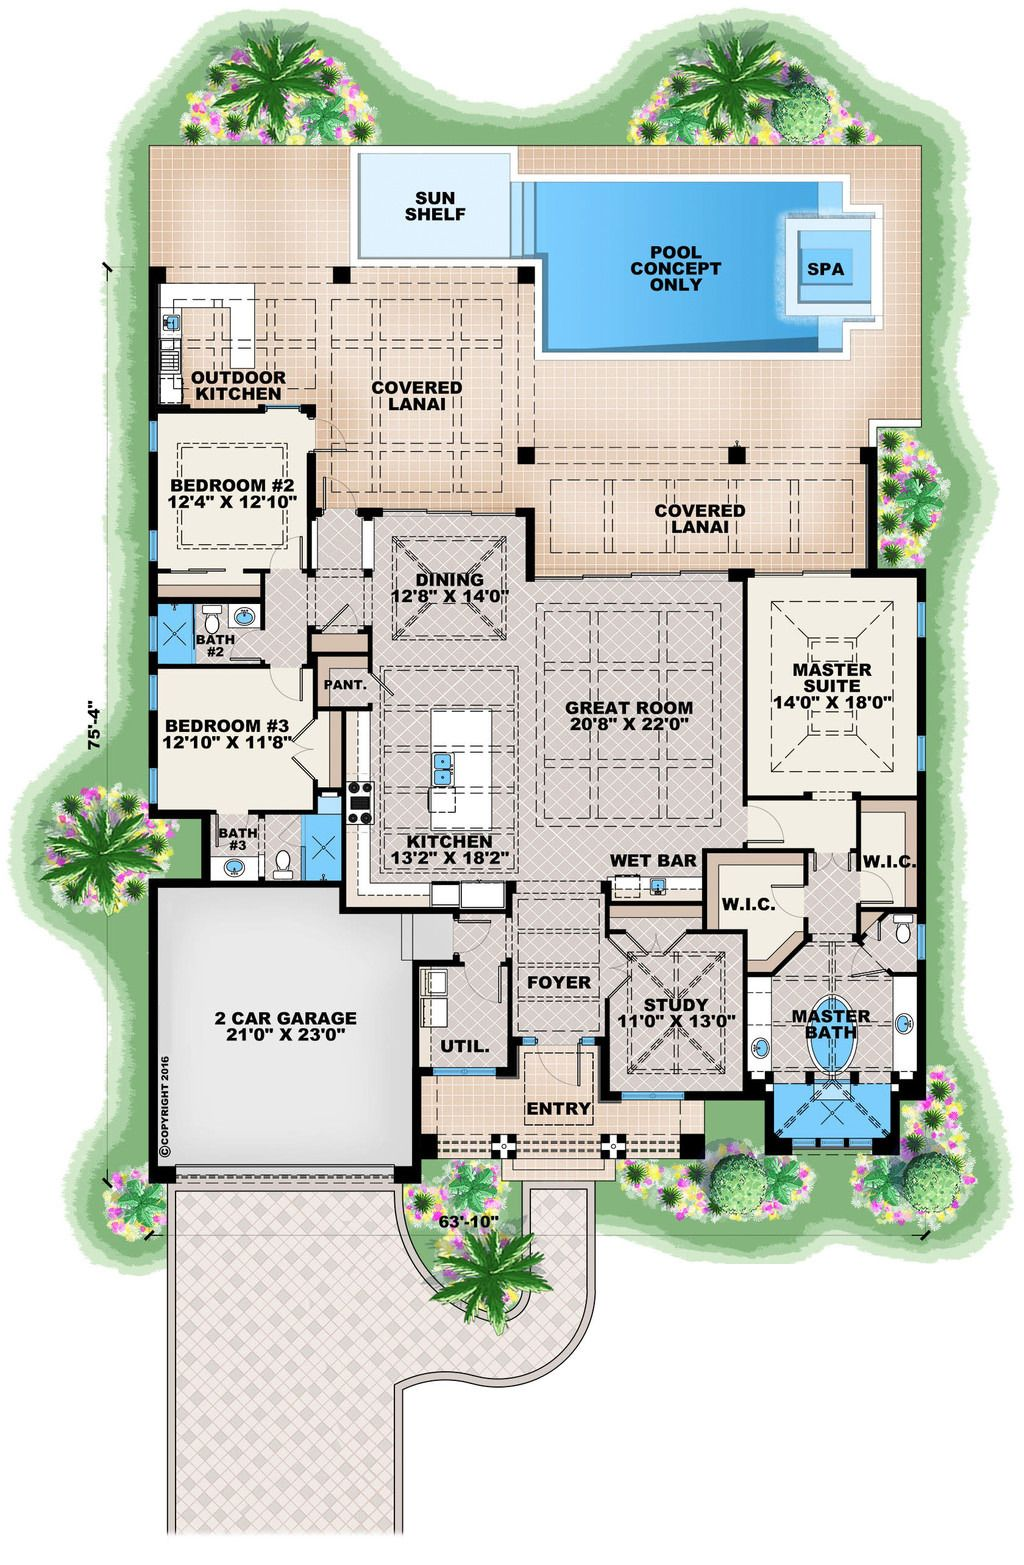 Contemporary Style House Plan - 3 Beds 3.00 Baths 2684 Sq/Ft Plan #27-551  Floor Plan - Main Floor Plan - Houseplans.com